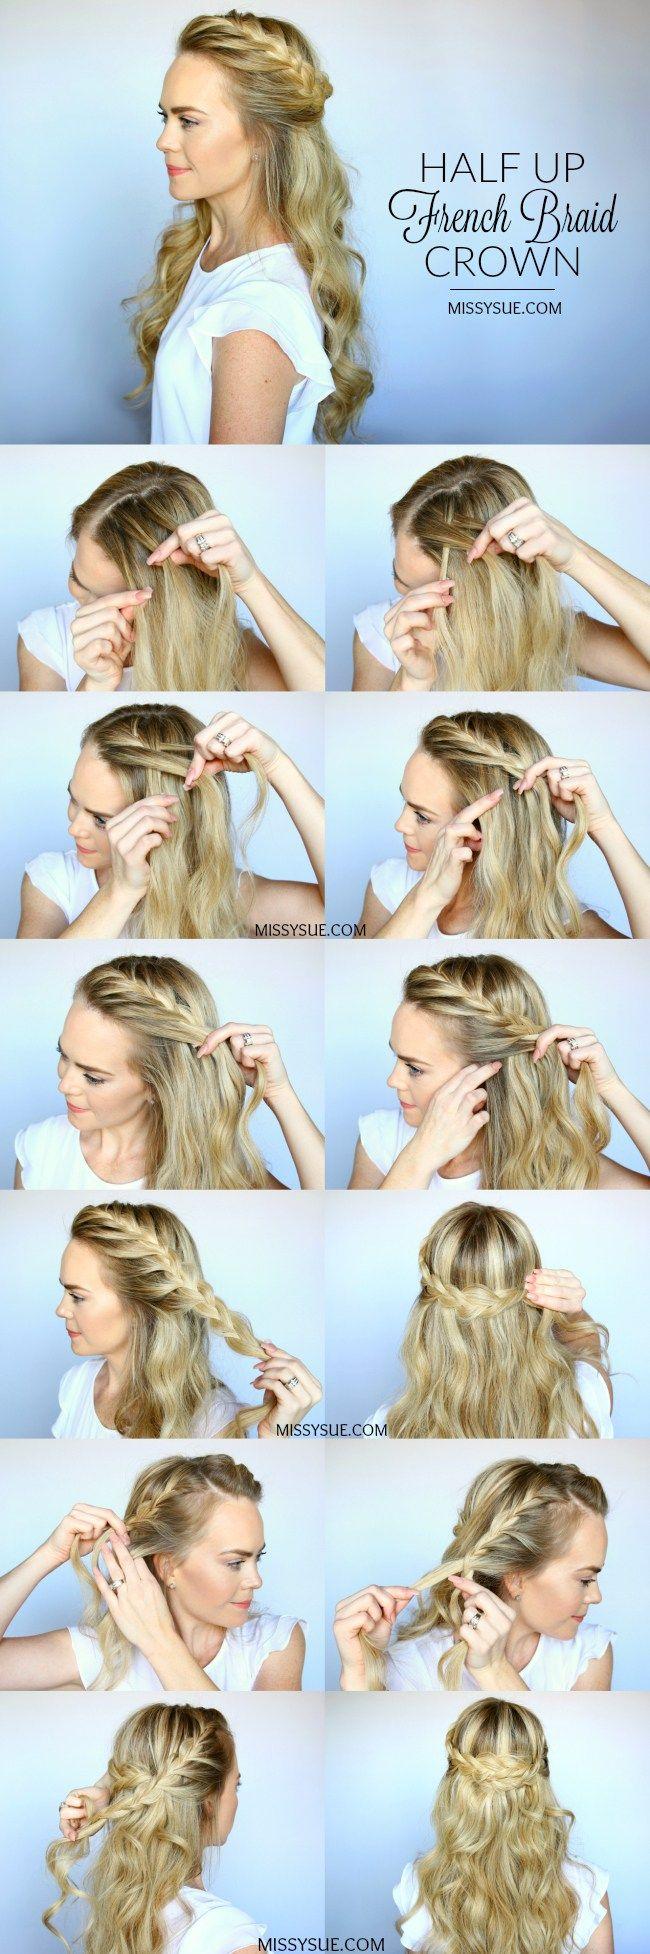 Learn how to create these Half Up French Braids + everyday curls with @SallyBeauty  See the full post at MissySue.com #SallyBeauty #partner